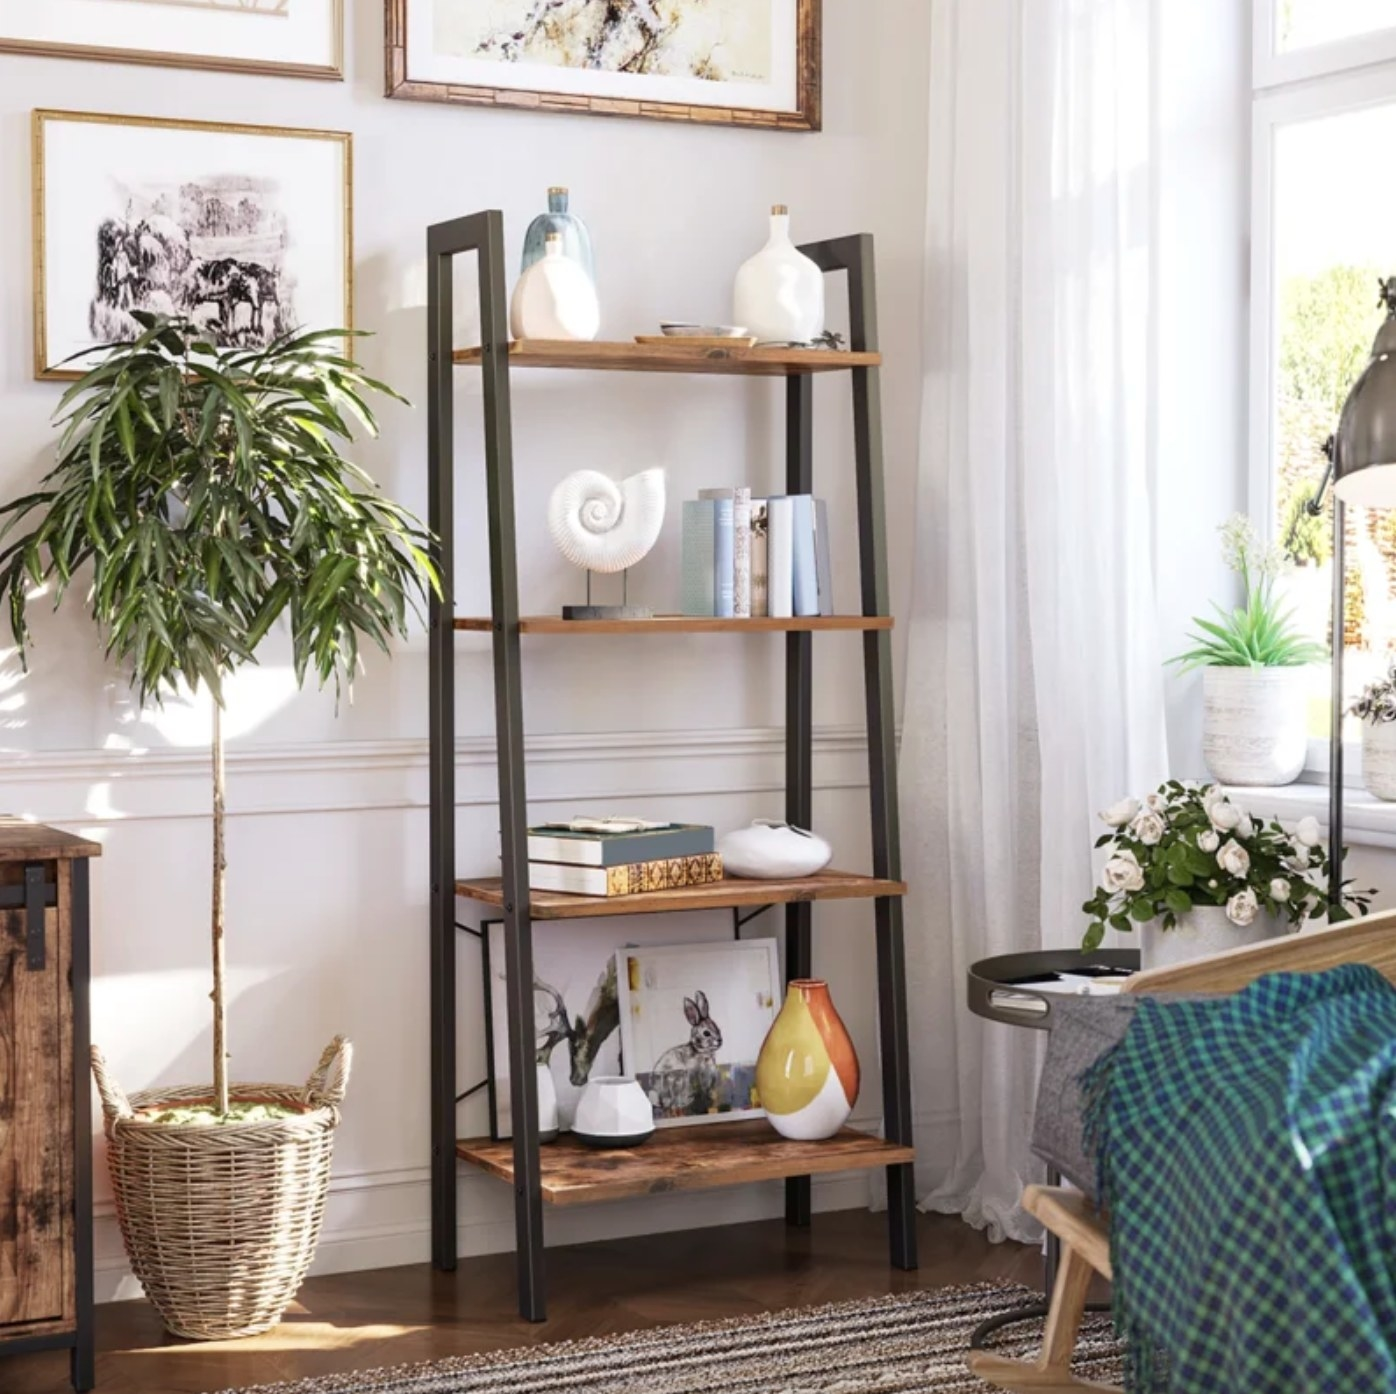 The steel bookcase covered in books, vases, and trinkets